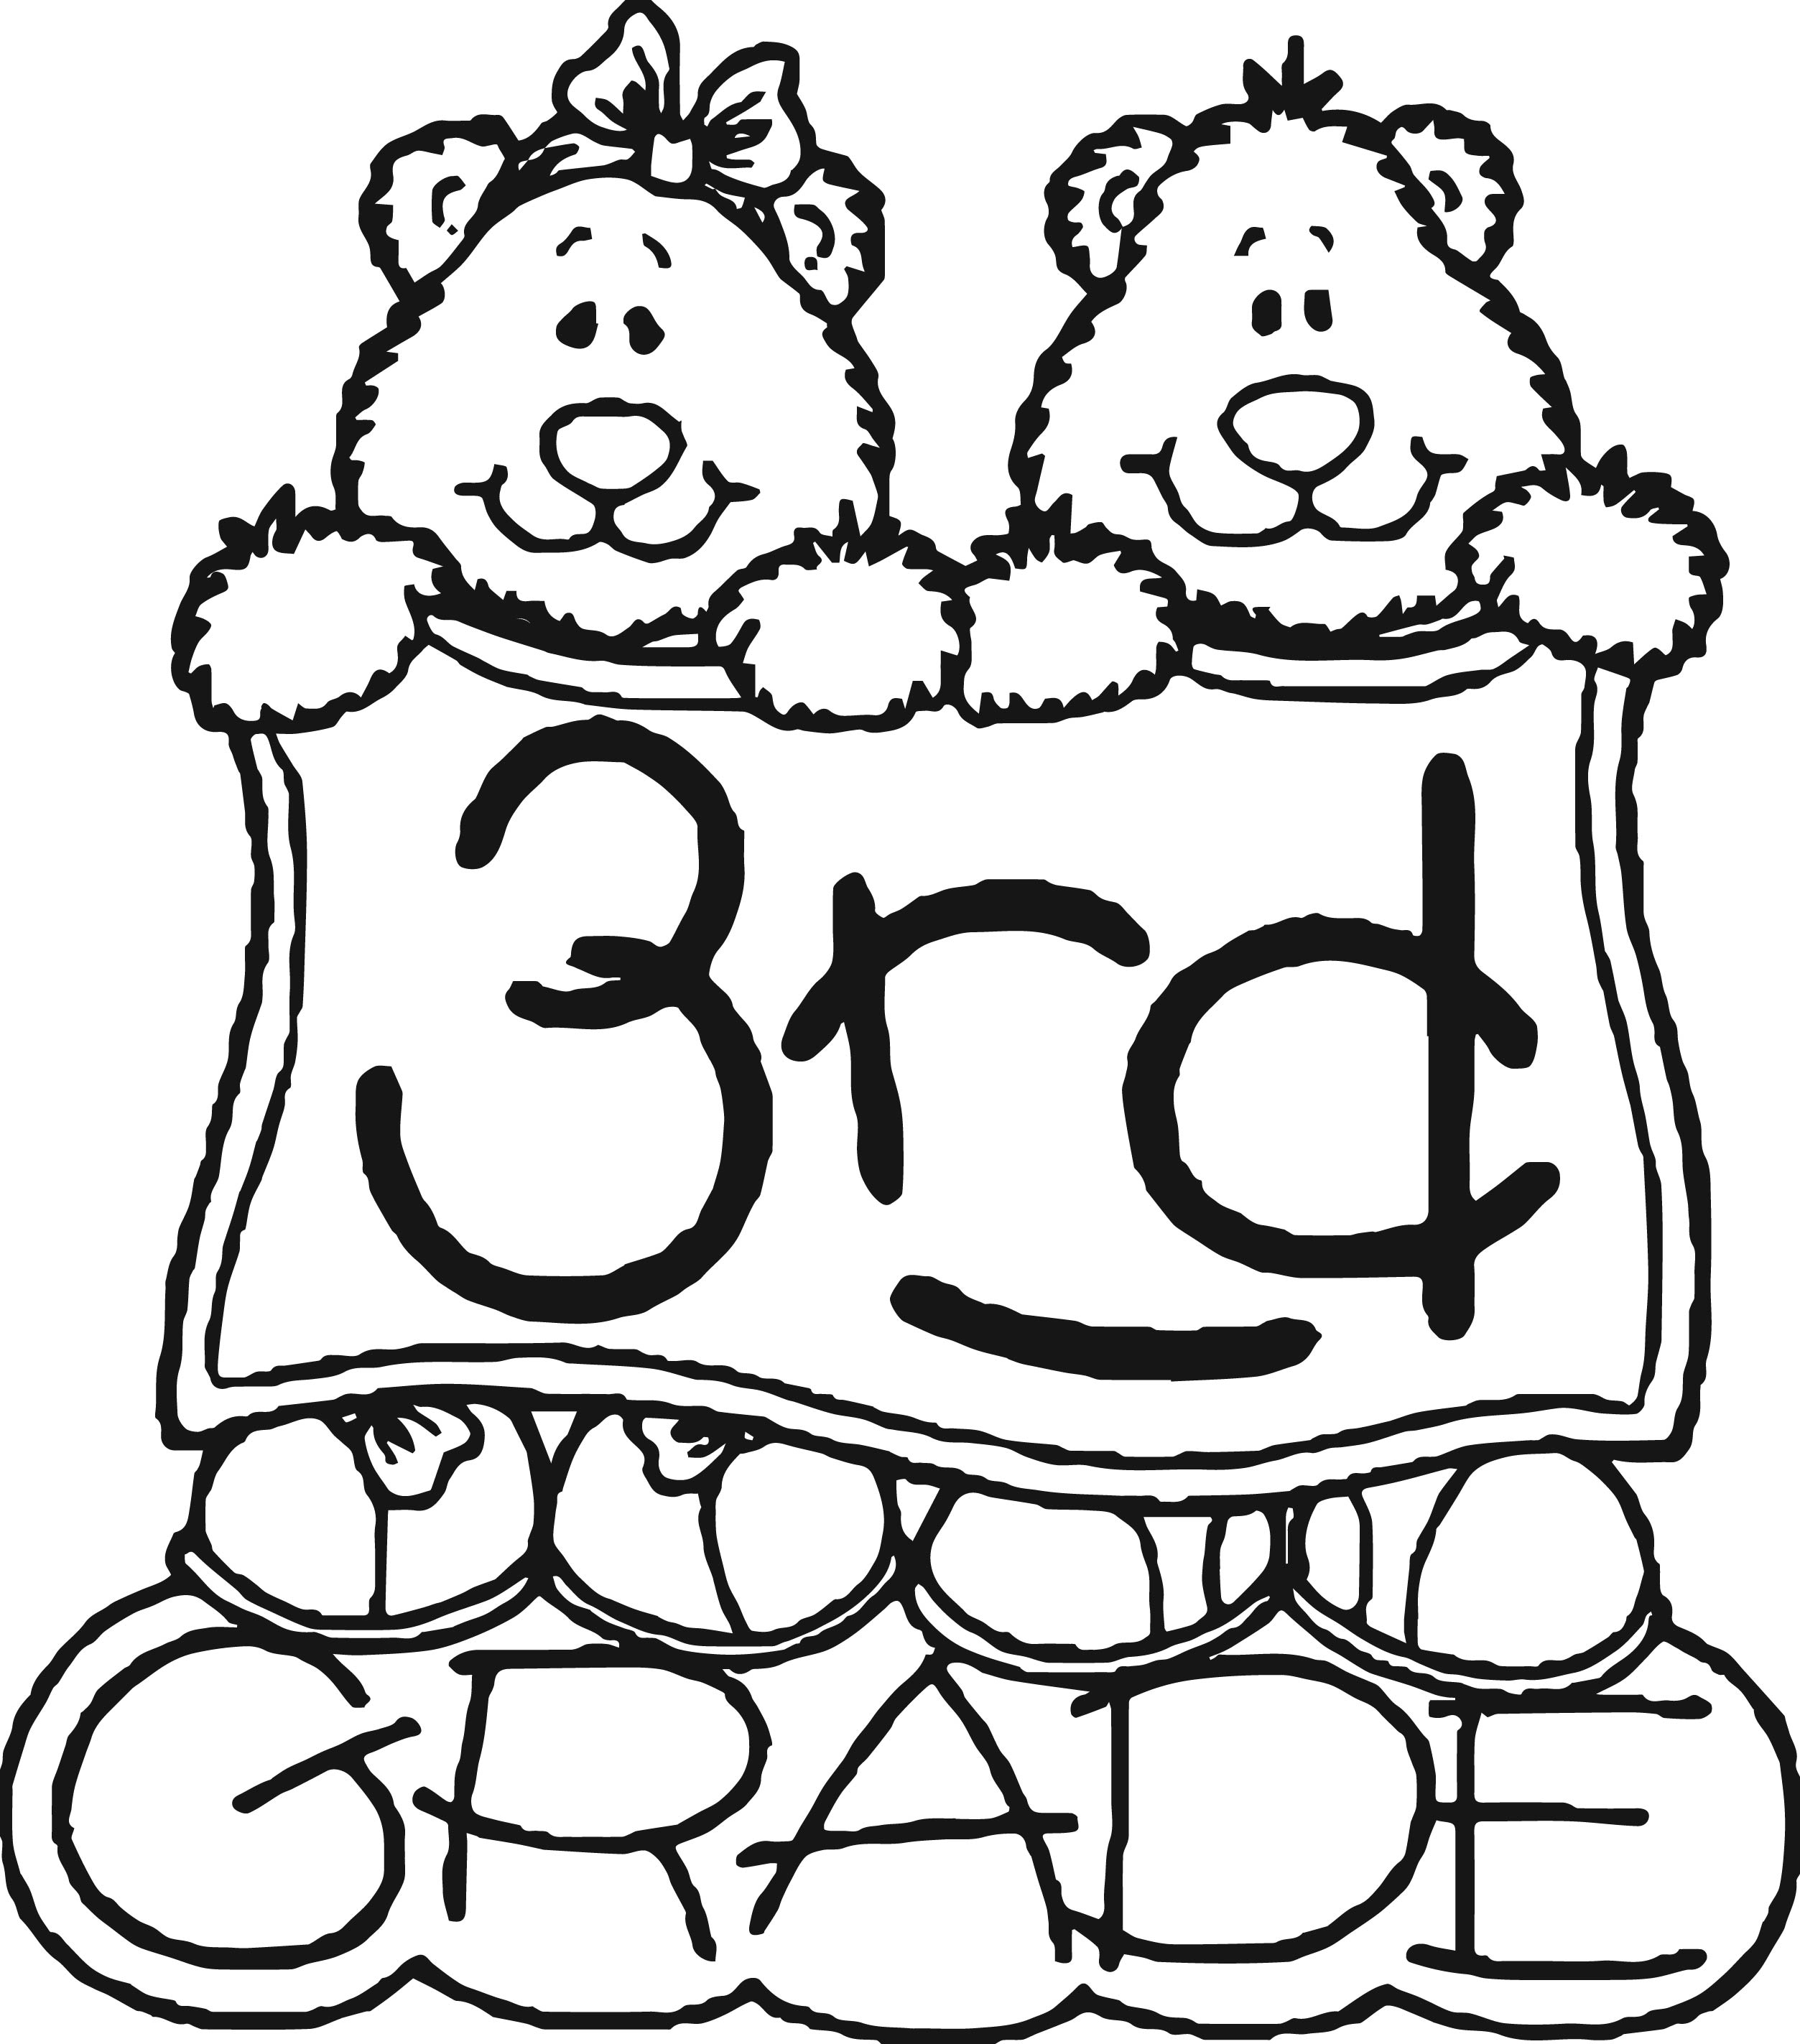 coloring worksheets for grade 3 math coloring pages 4th grade free download on clipartmag grade for coloring worksheets 3